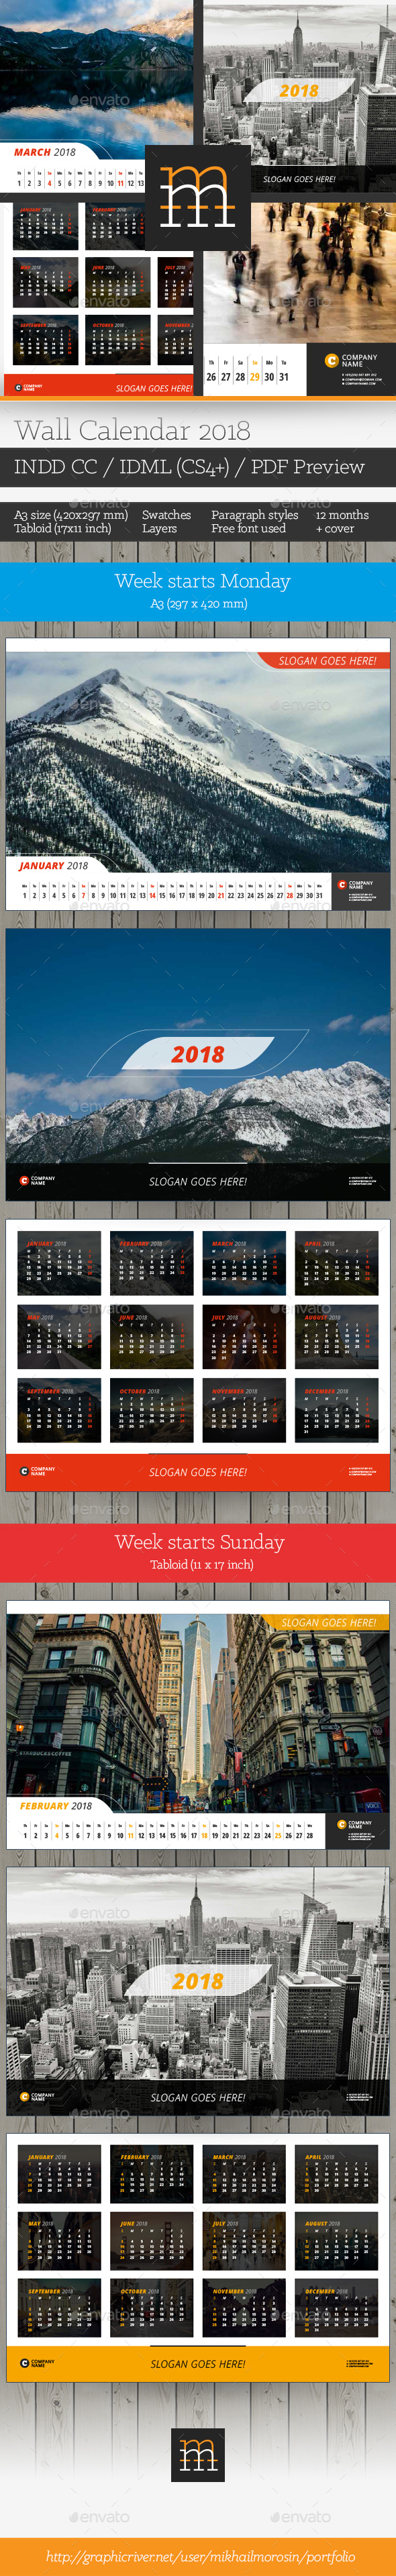 GraphicRiver Wall Calendar 2018 20659046